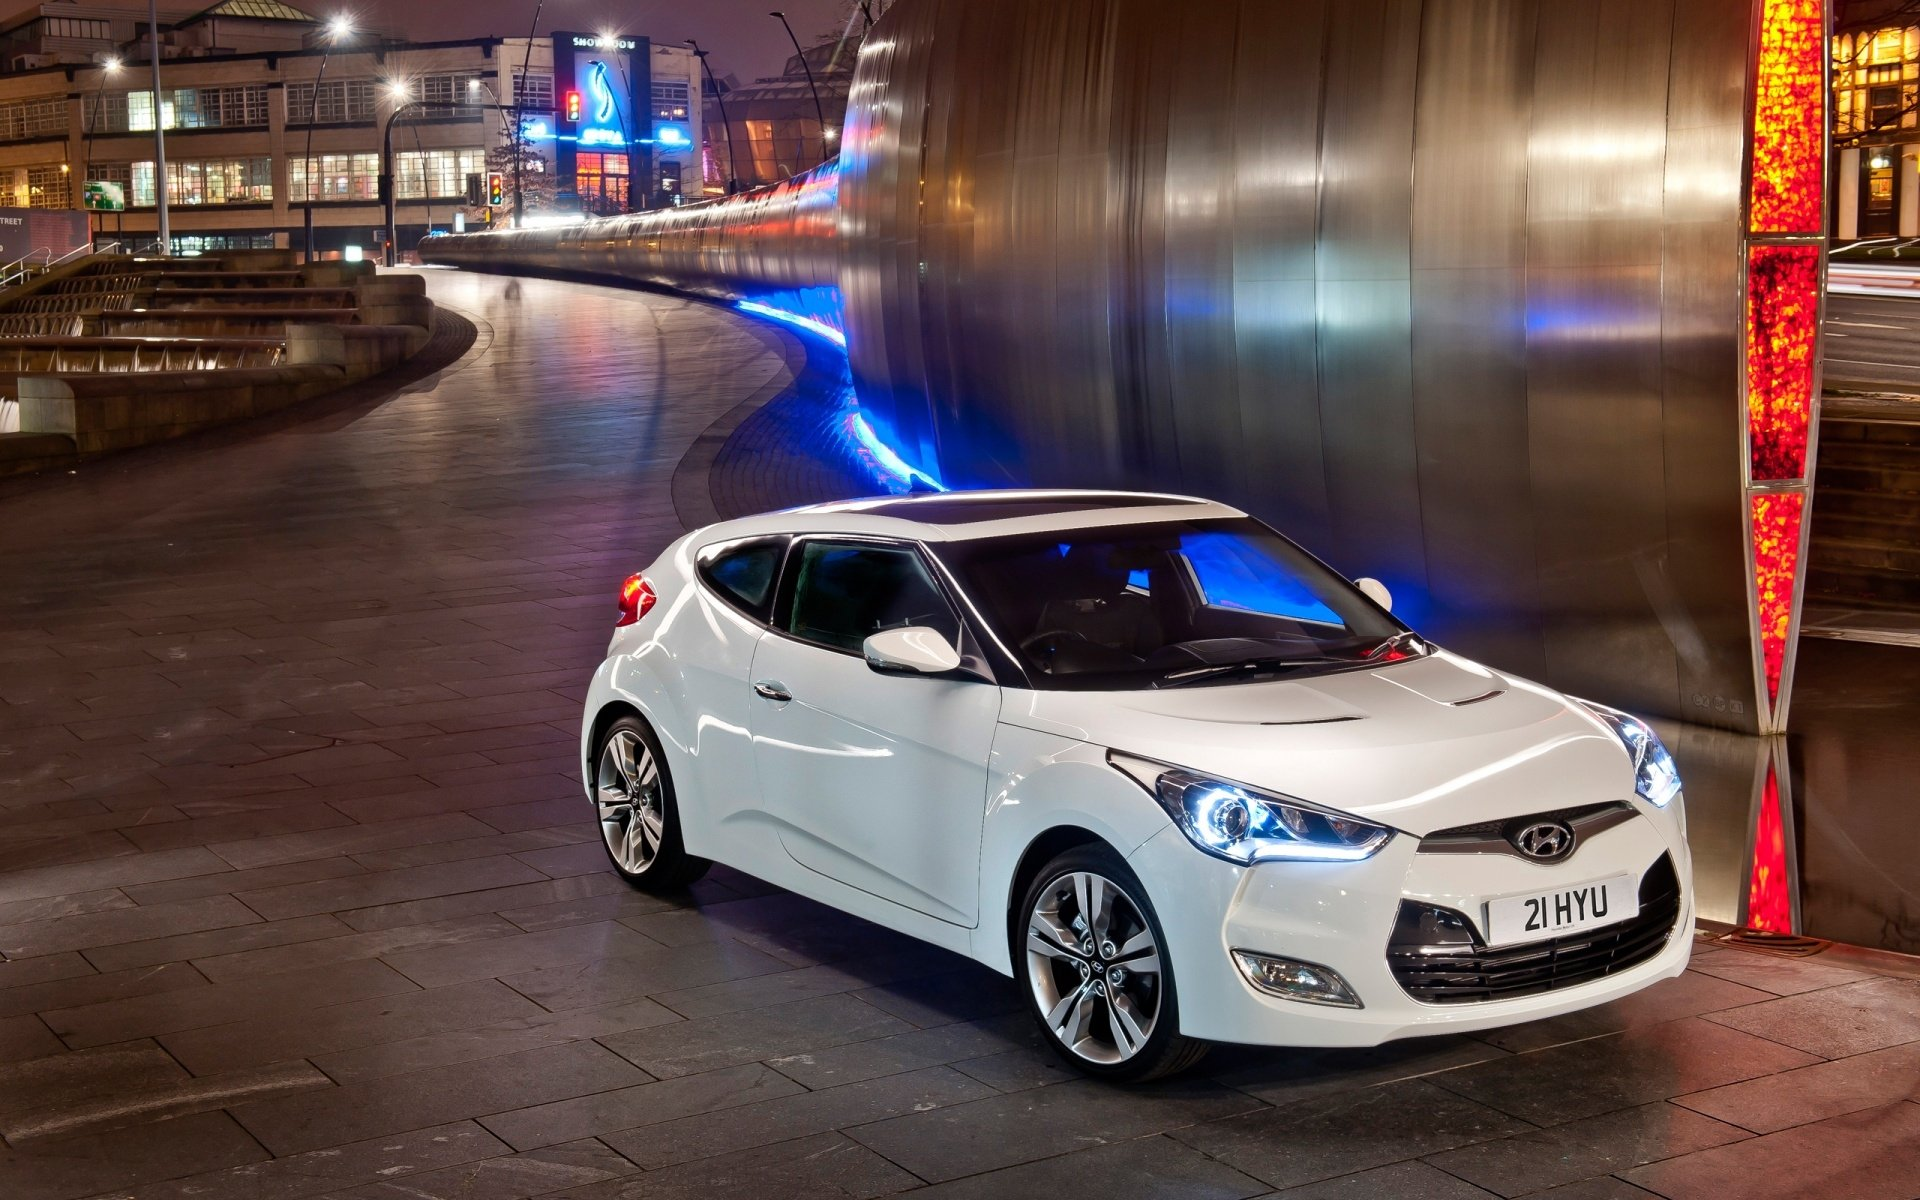 Hyundai Veloster Full Hd Fond D 233 Cran And Arri 232 Re Plan